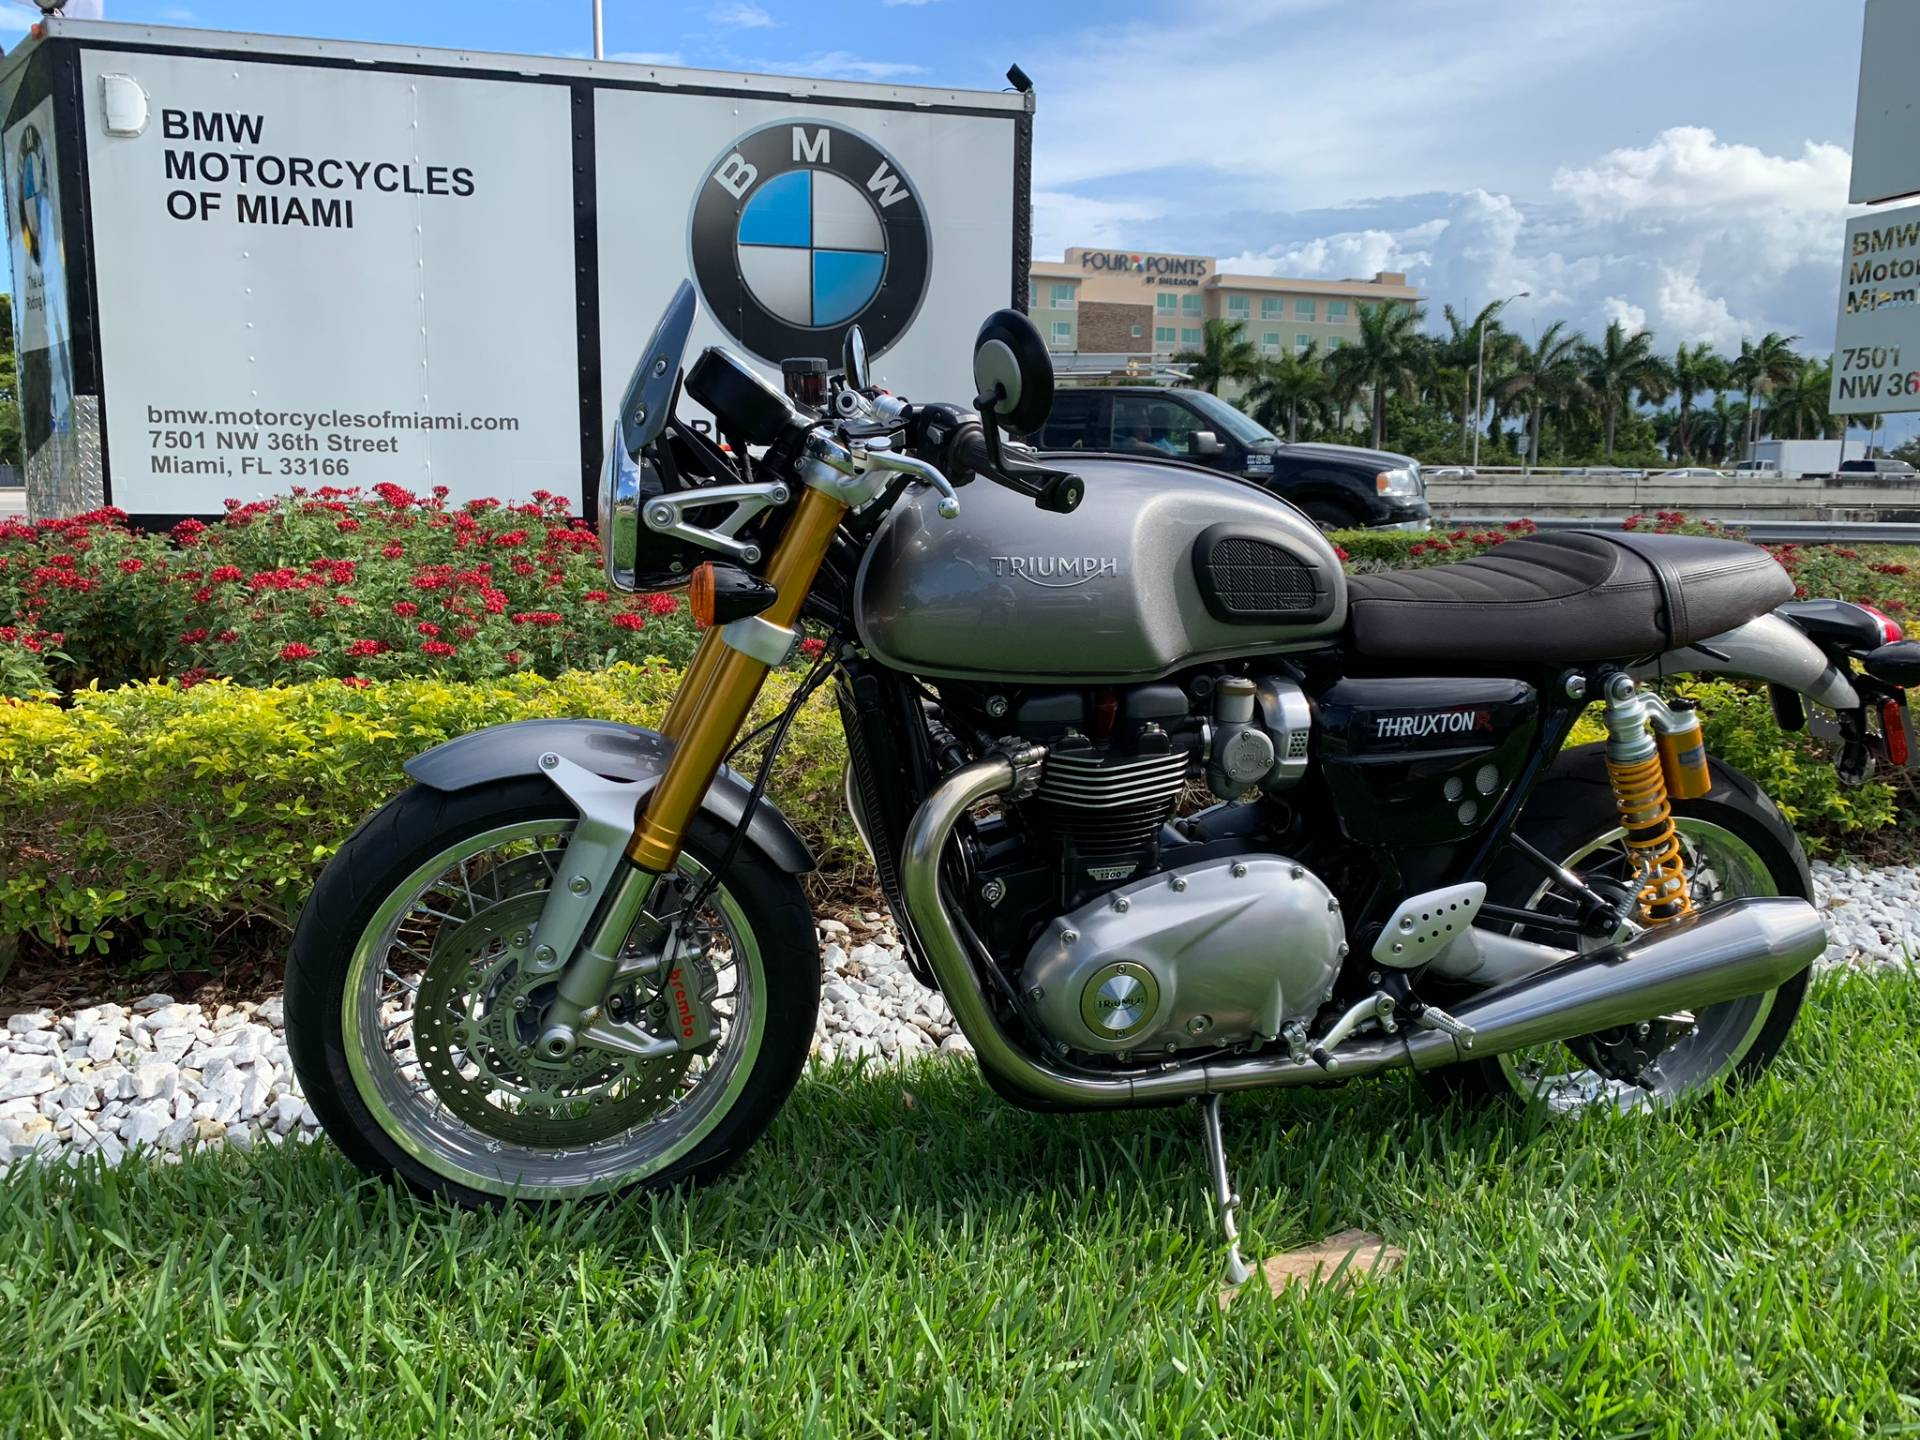 Used 2016 Triumph Thruxton 1200 R for sale,  2016 Triumph Thruxton 1200R for sale,  Triumph Thruxton1200R,  Used ThruxtonR, Cafe. Cruiser, BMW Motorcycles of Miami, Motorcycles of Miami, Motorcycles Miami, New Motorcycles, Used Motorcycles, pre-owned. #BMWMotorcyclesOfMiami #MotorcyclesOfMiami #Moto - Photo 6